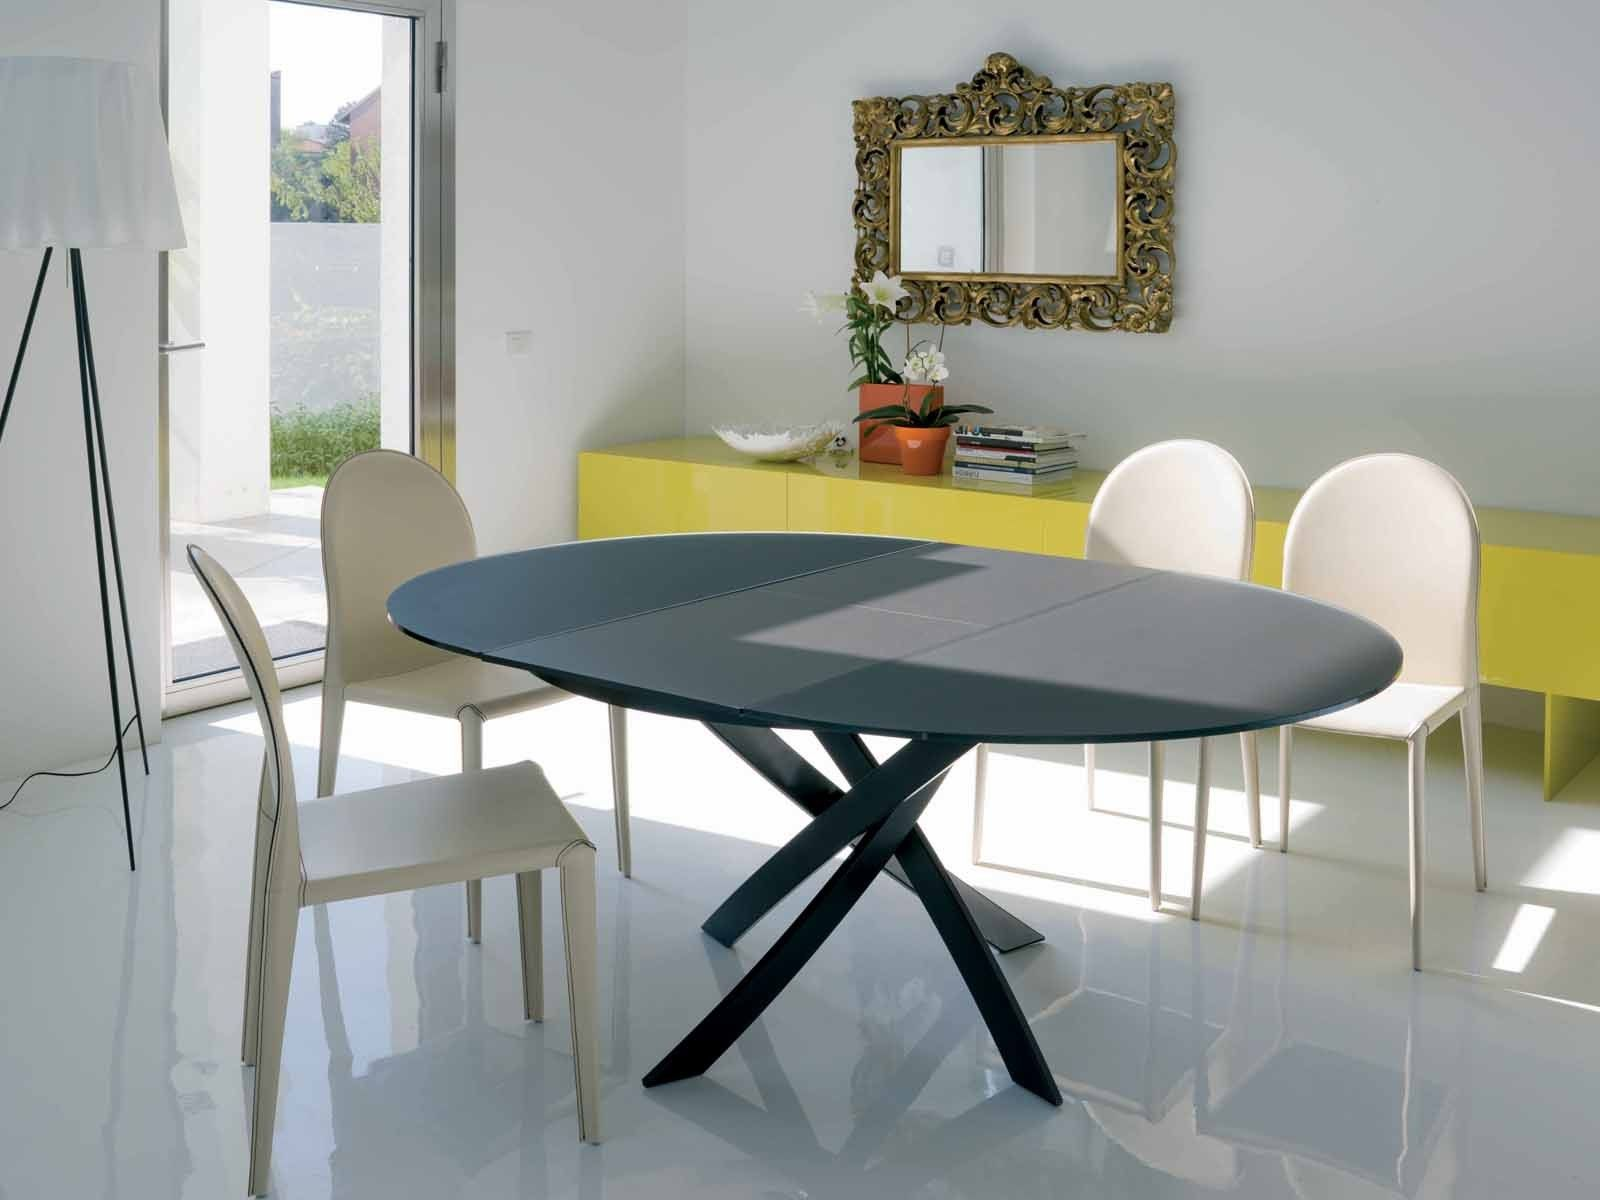 Barone Extensible Table Round Dining Table Modern Round Dining Table Expandable Round Dining Table